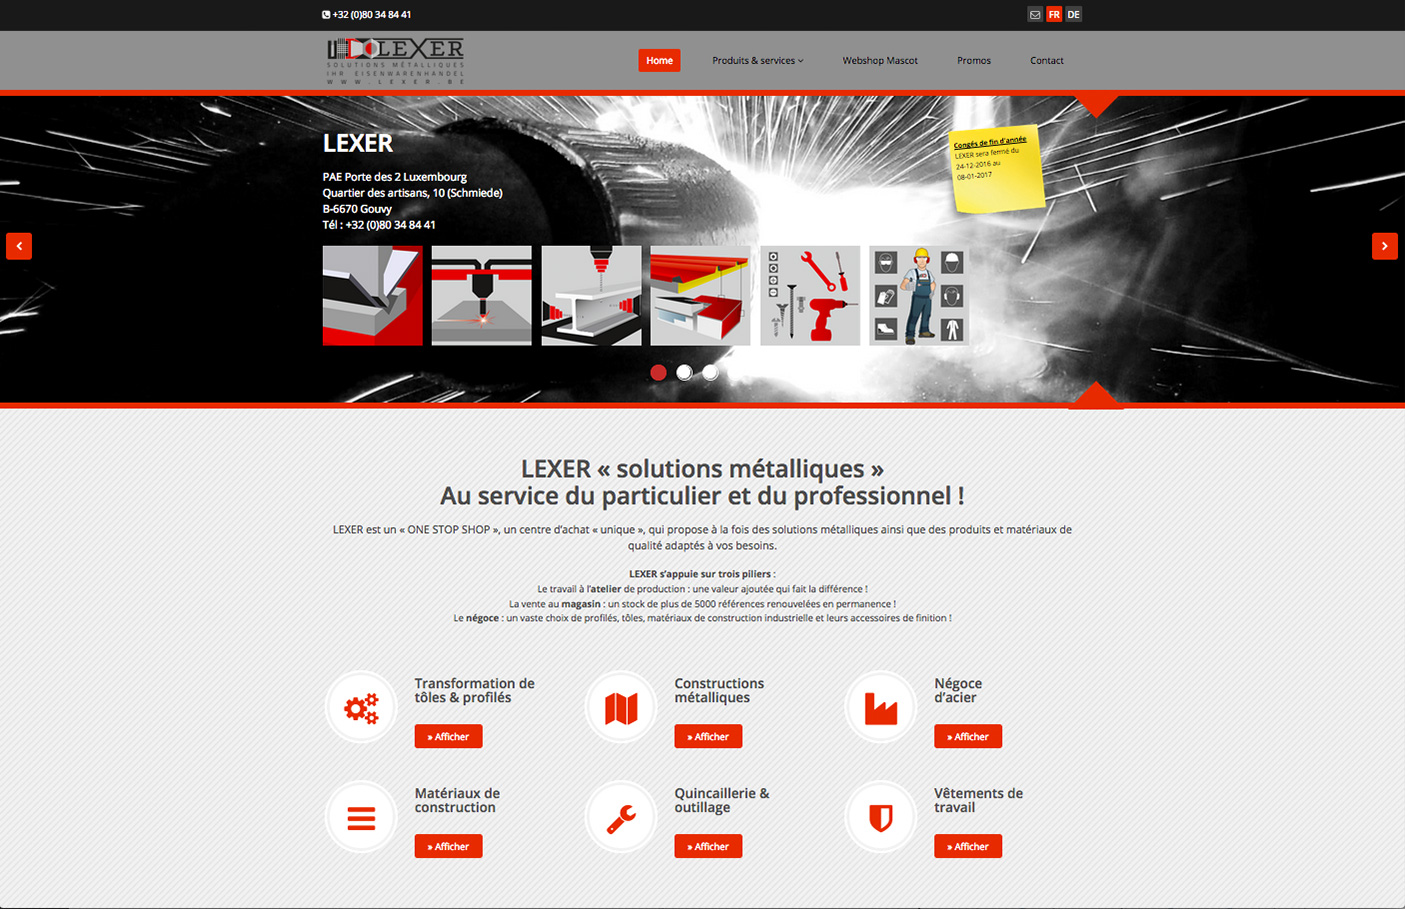 www.lexer.be